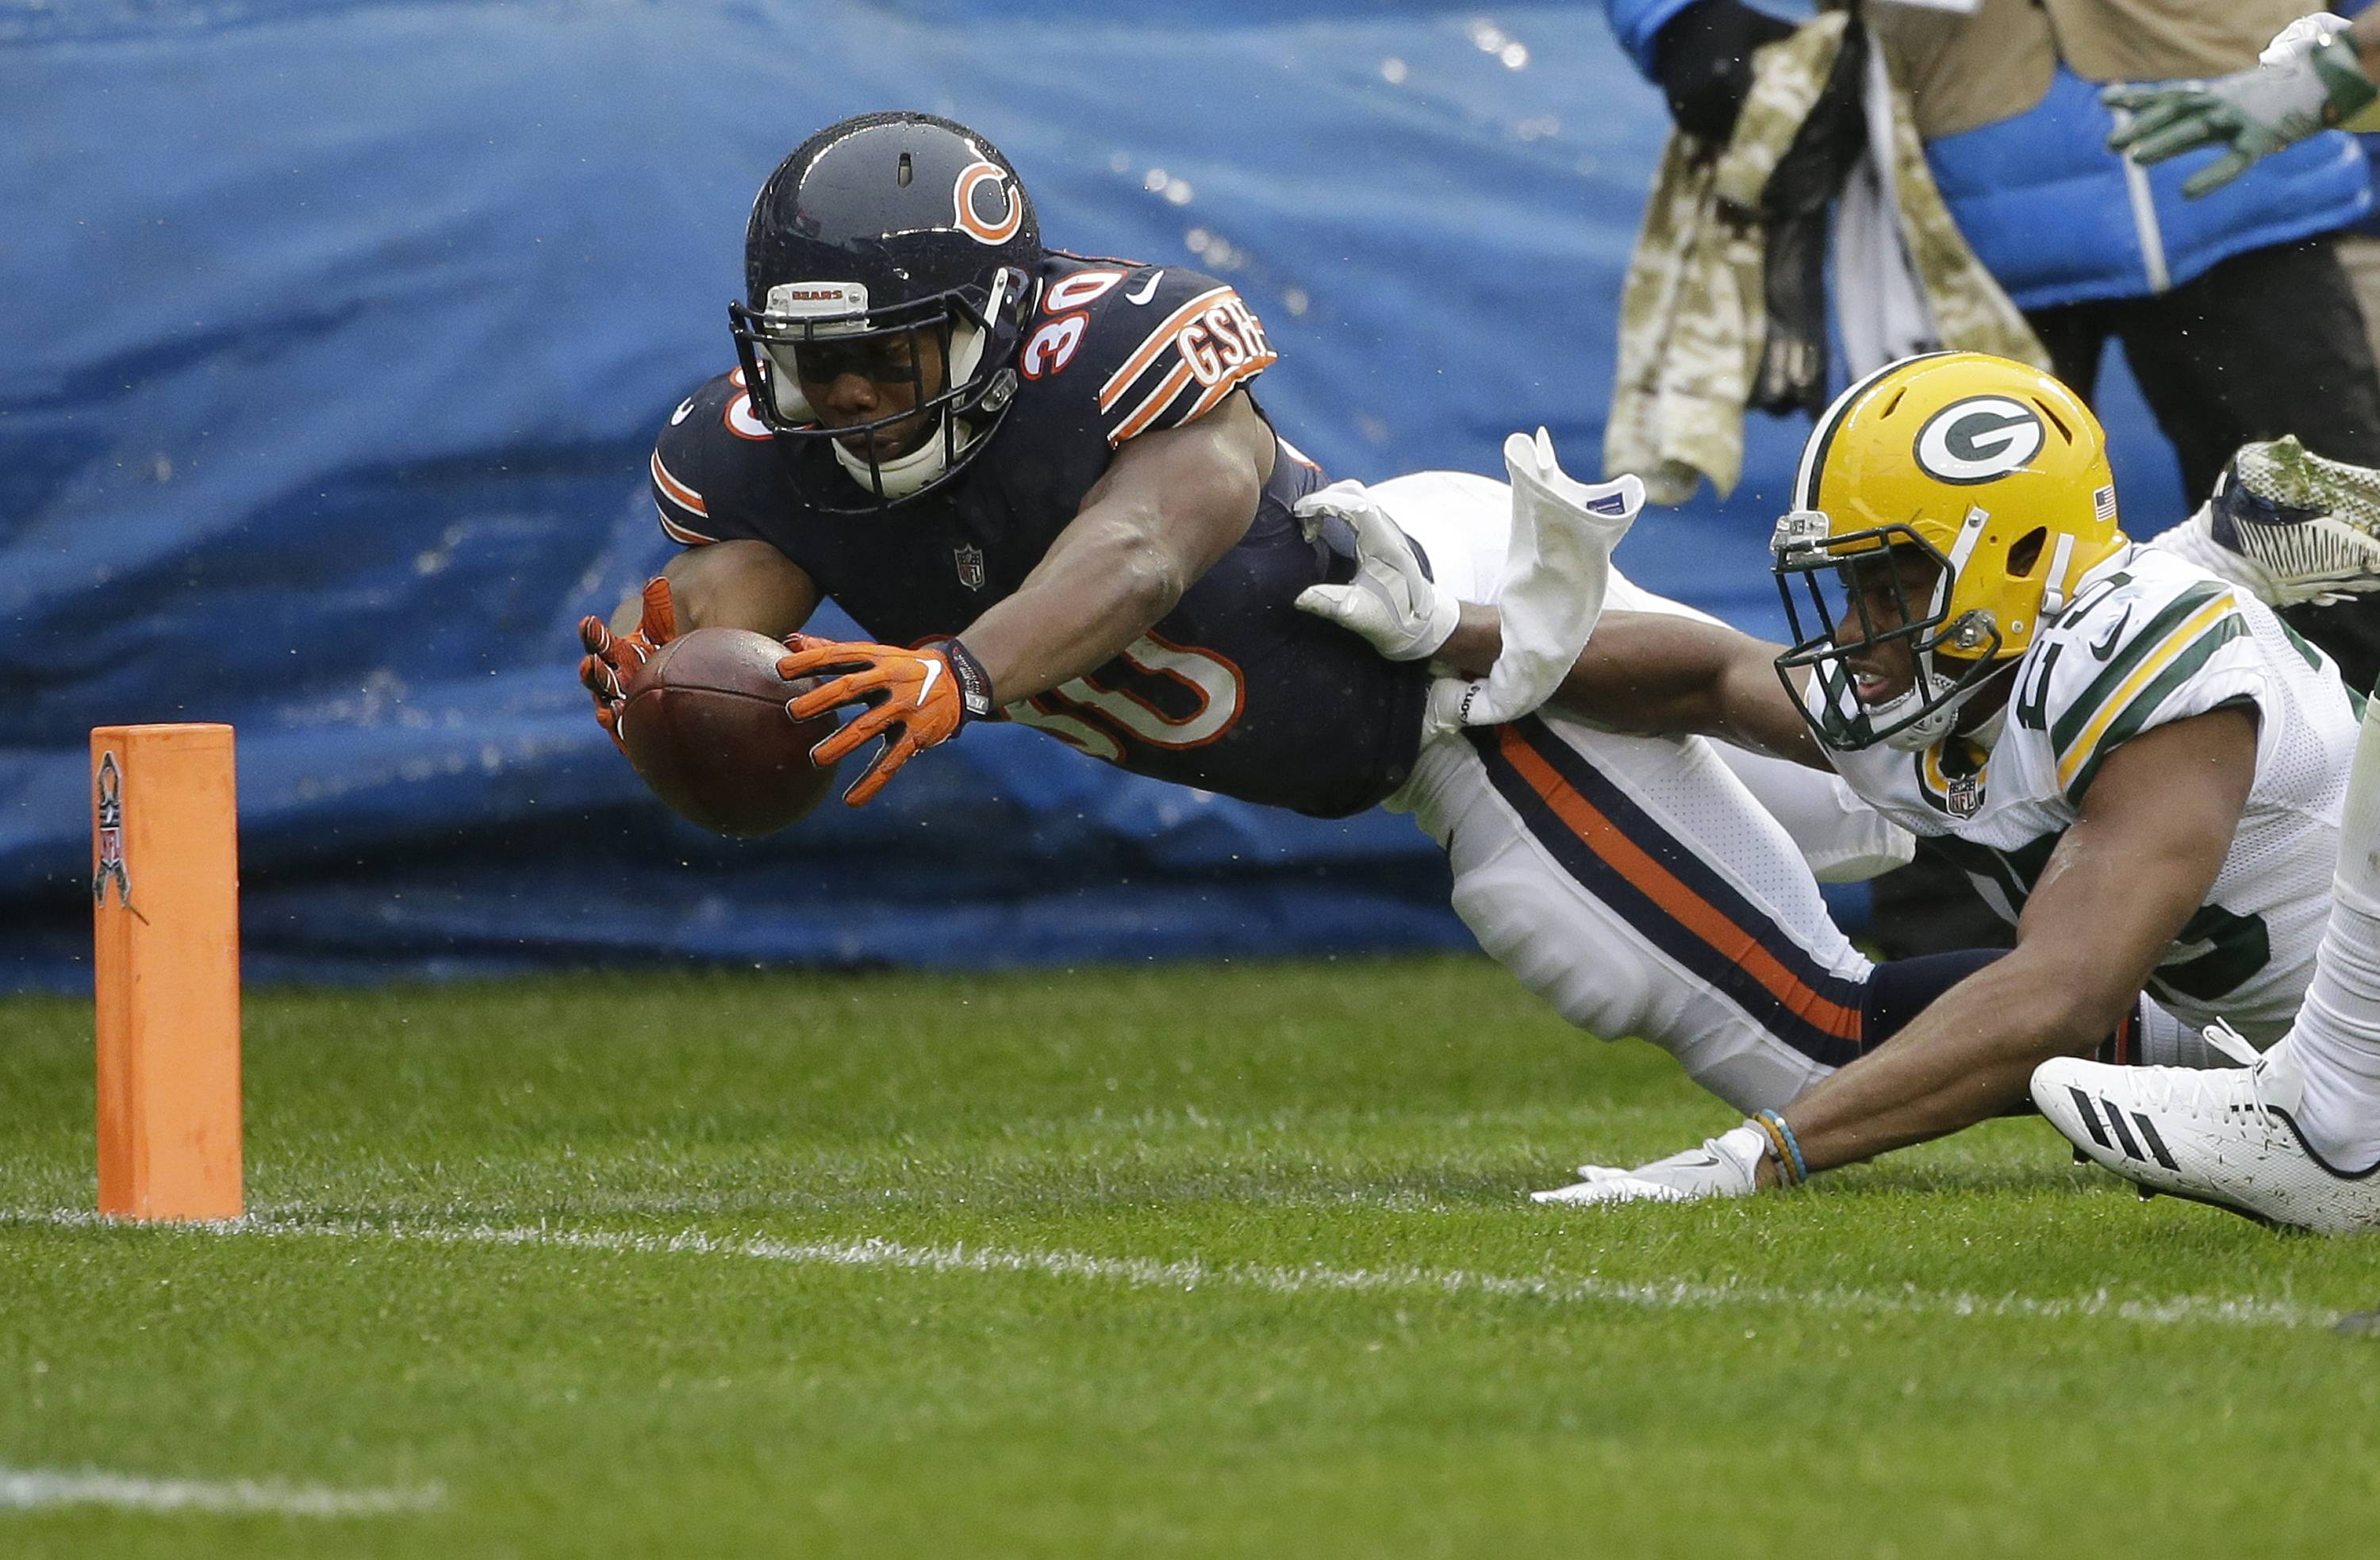 Chicago Bears running back Benny Cunningham (30) dives to the end zone against Green Bay Packers defensive back Marwin Evans (25) as Cunningham fumbles the ball during the first half of an NFL football game, Sunday, Nov. 12, 2017, in Chicago. (AP Photo/Nam Y. Huh)